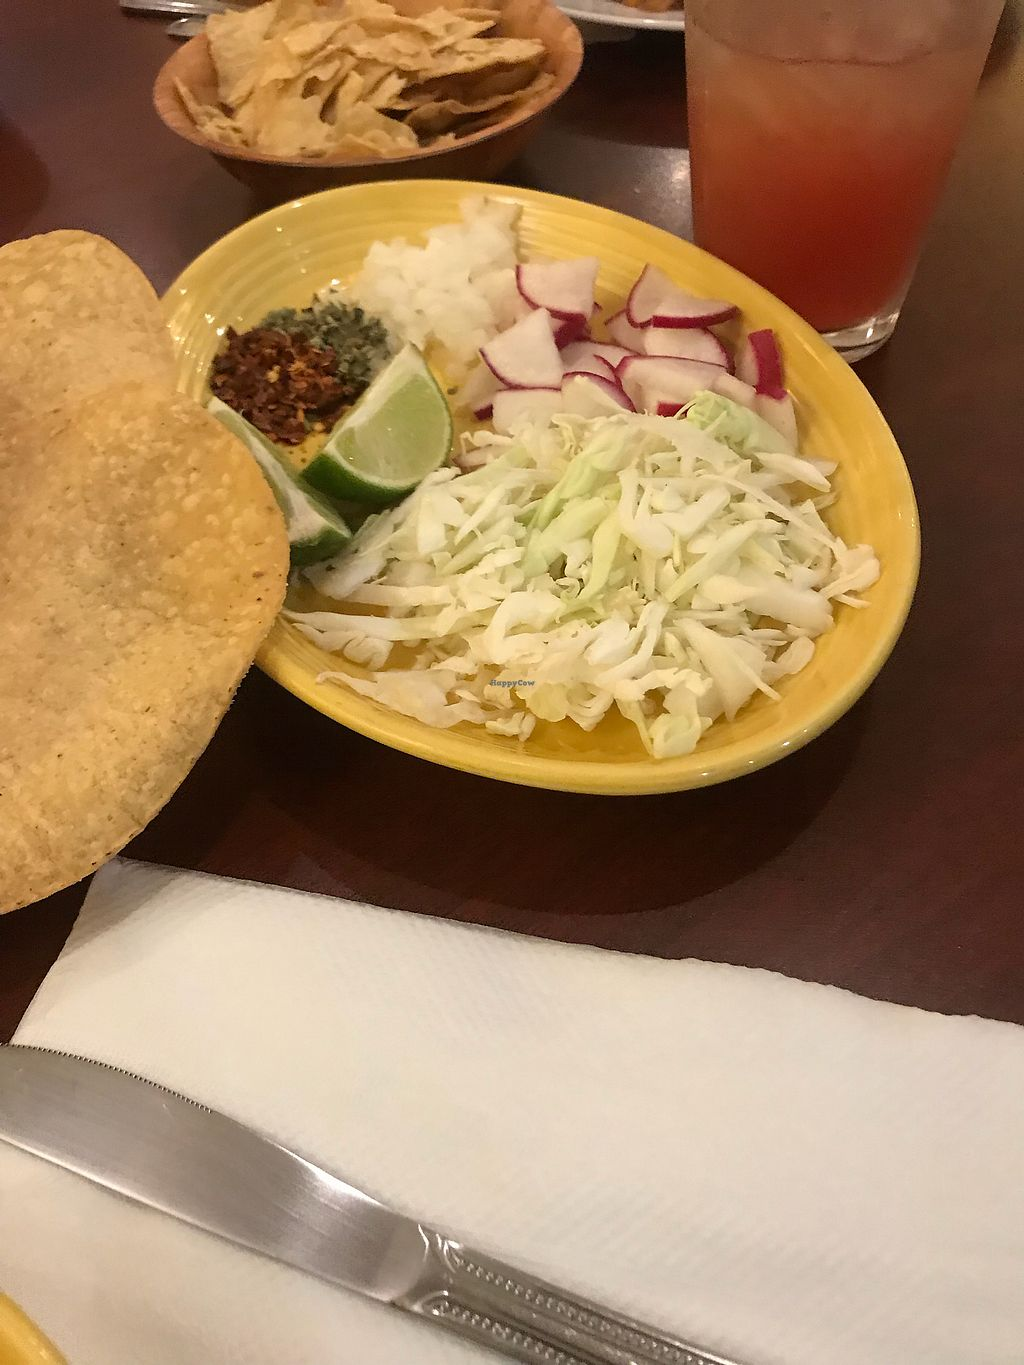 """Photo of un solo sol  by <a href=""""/members/profile/Vegan_Ness"""">Vegan_Ness</a> <br/>Add ins for Pozole  <br/> October 8, 2017  - <a href='/contact/abuse/image/55390/313271'>Report</a>"""